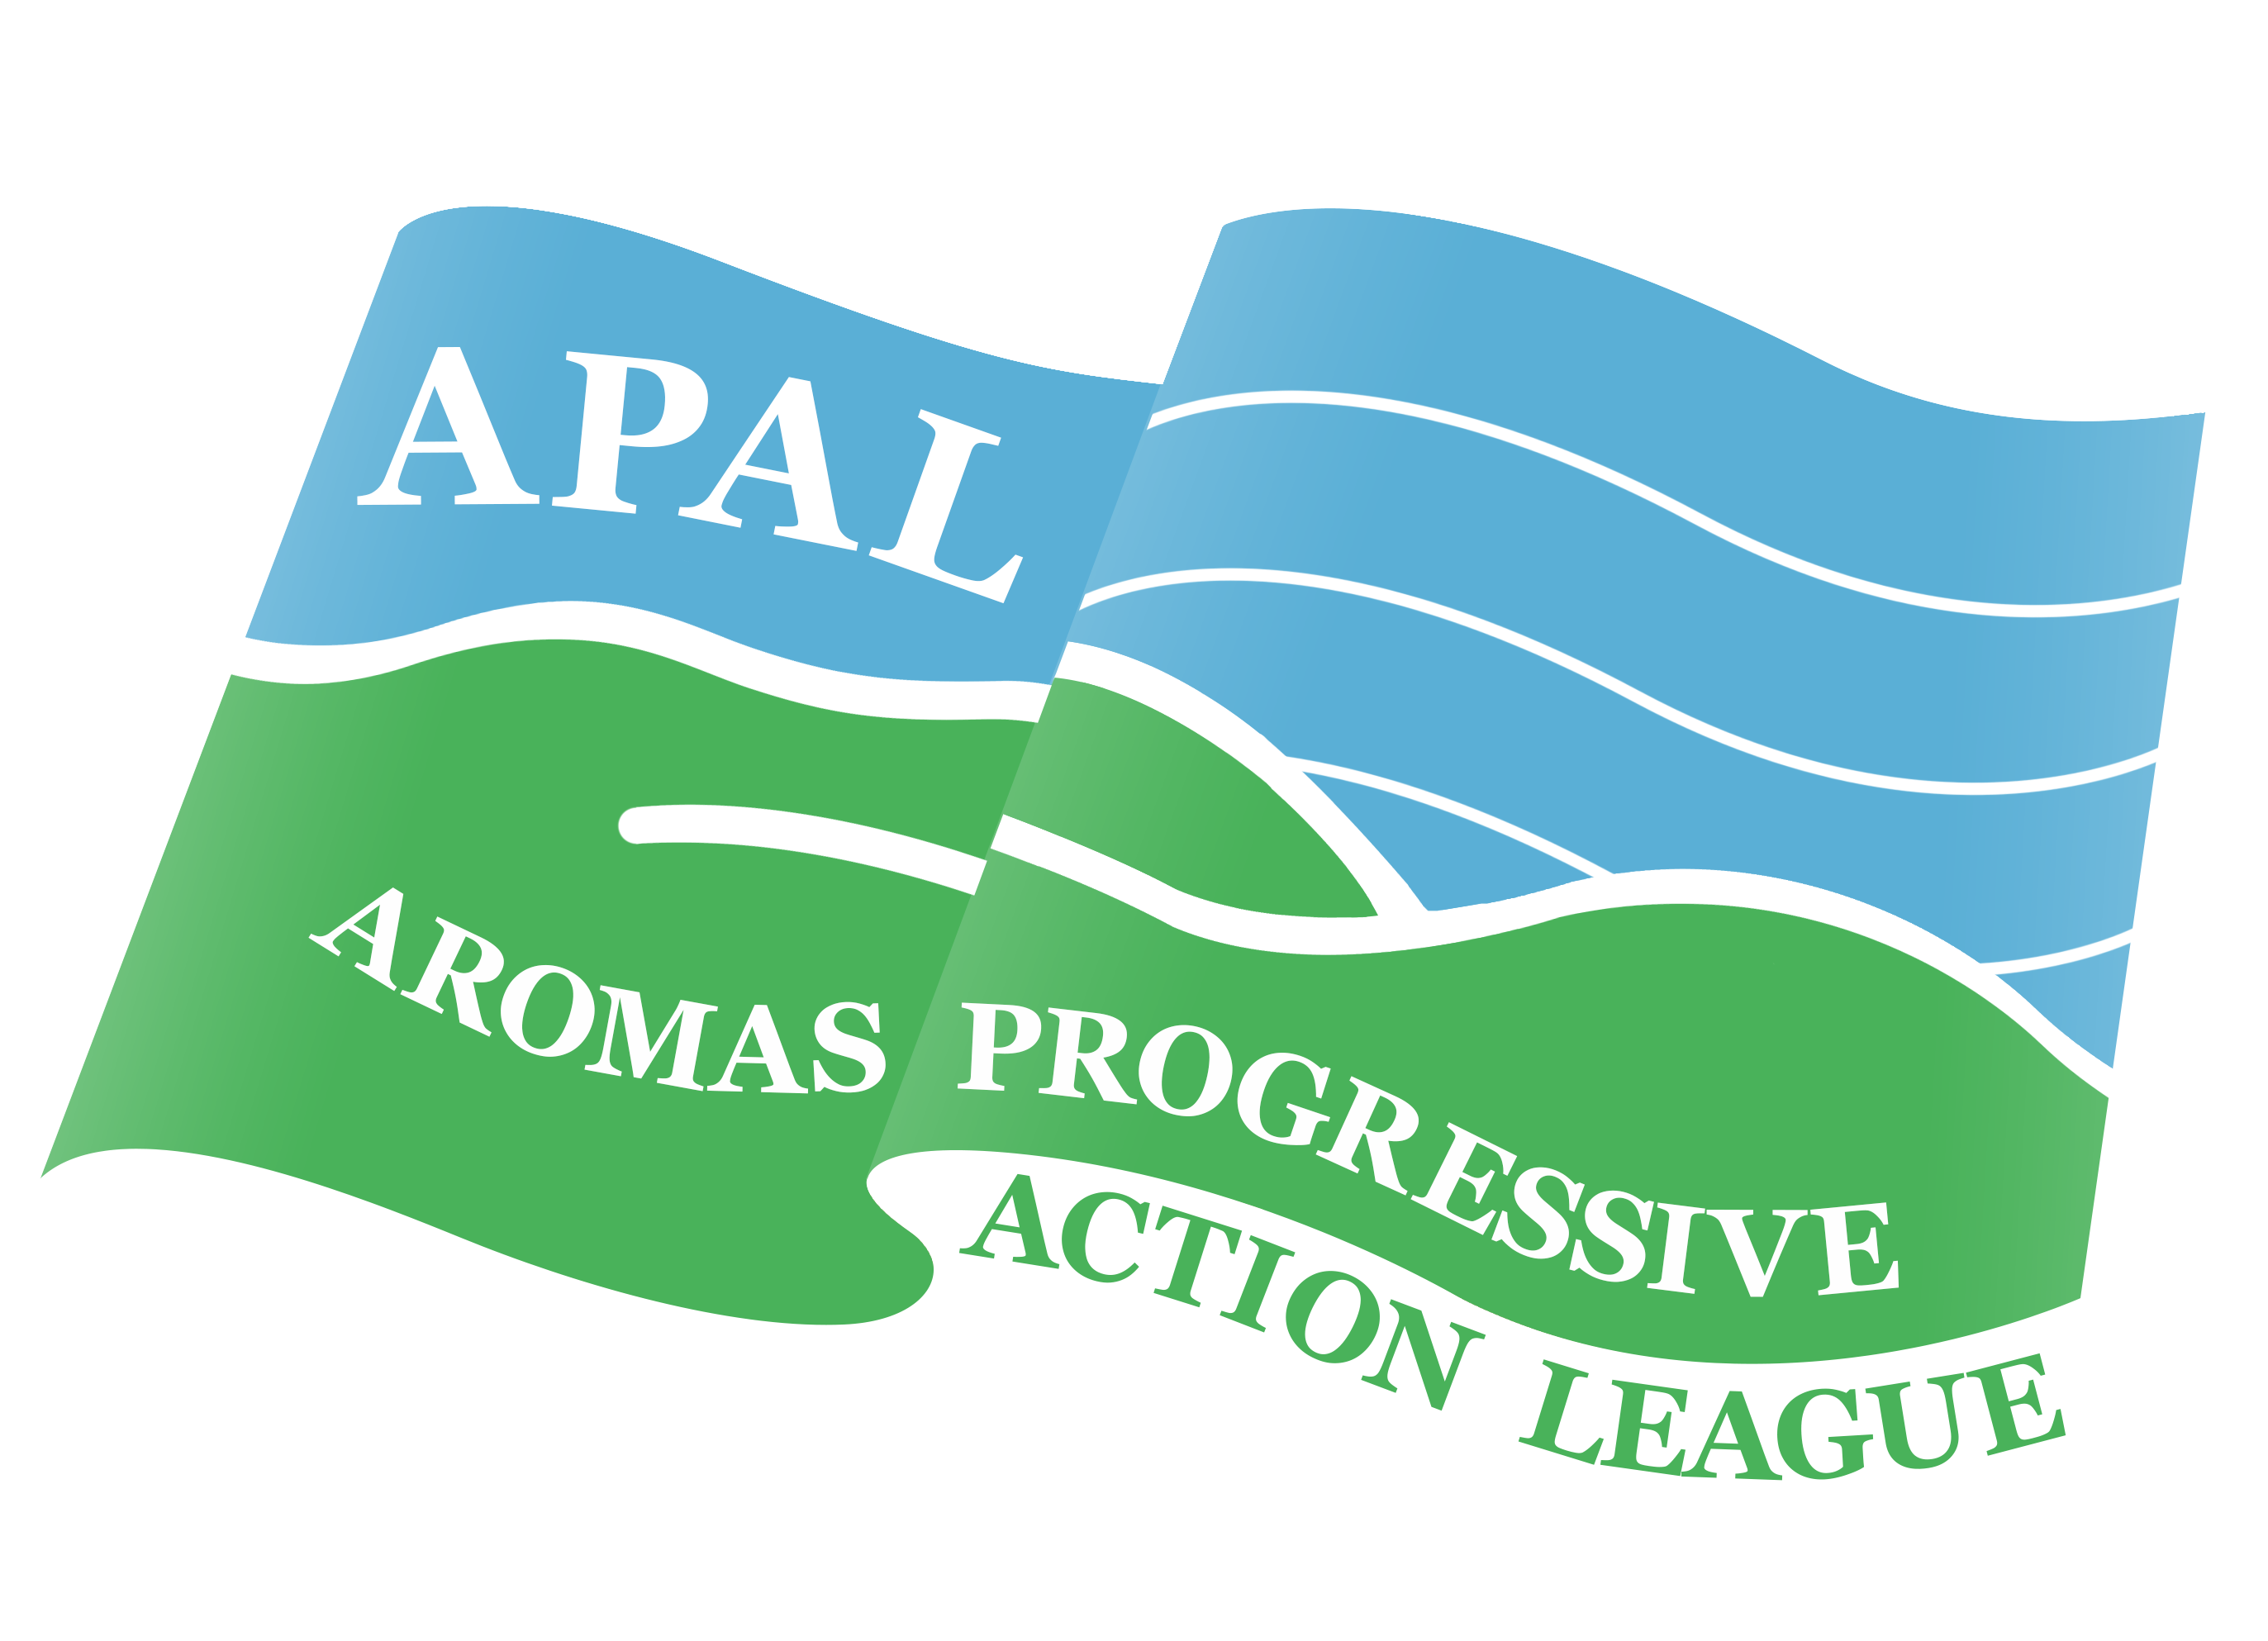 Aromas Progressive Action League